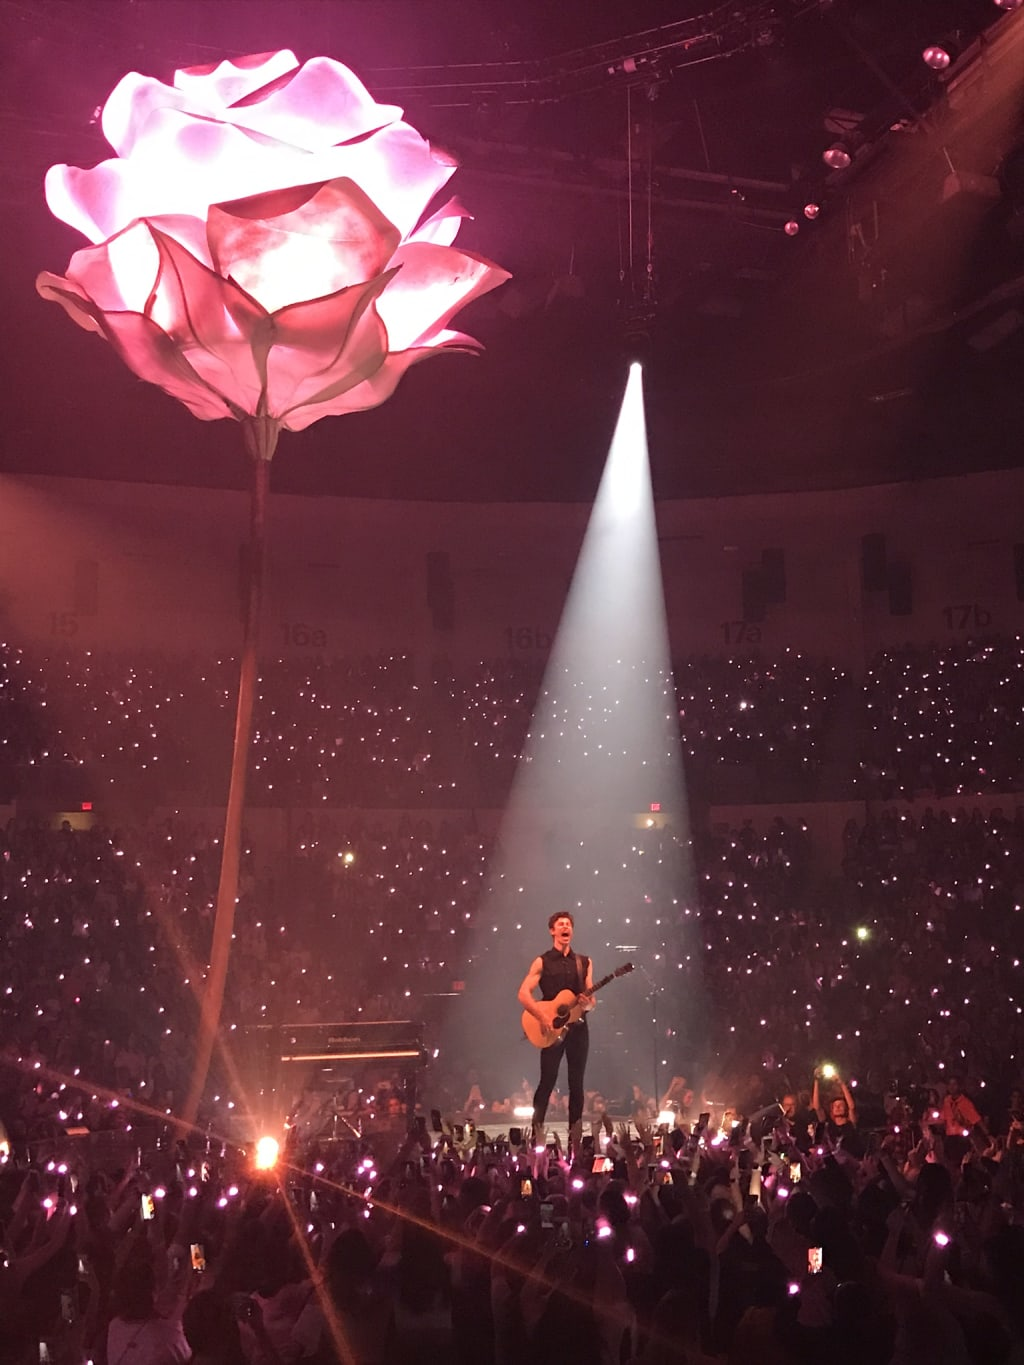 Fallin' All in Shawn Mendes